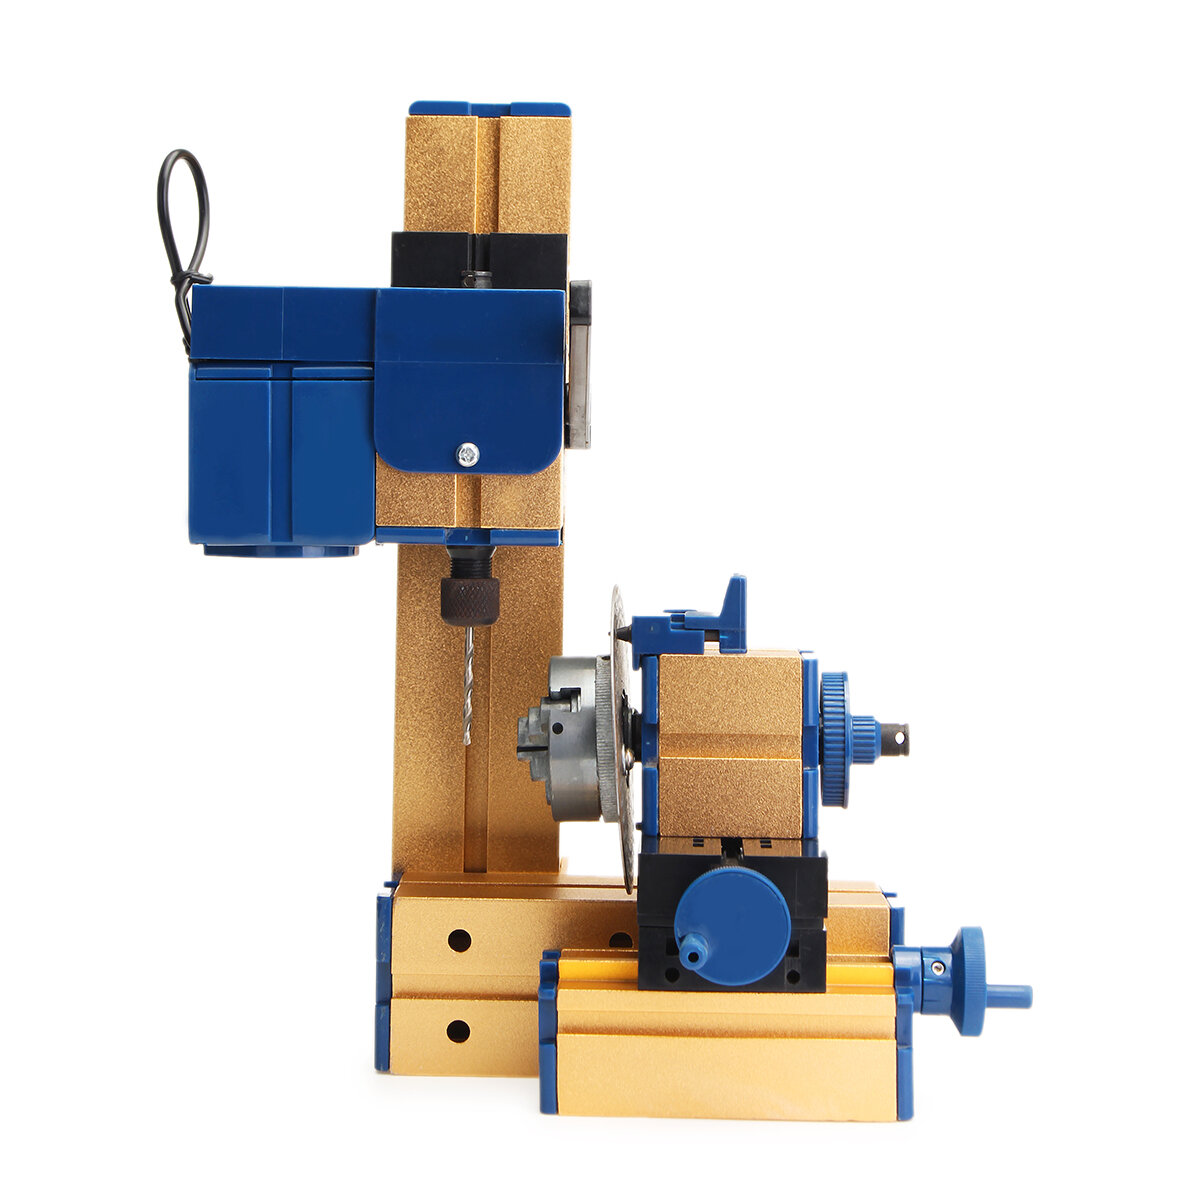 24W DC 12V 2A DIY Mini Lathe Rotary Spin Indexing Milling WorKing Router Table Drilling Machine Electric Drill Power Tools